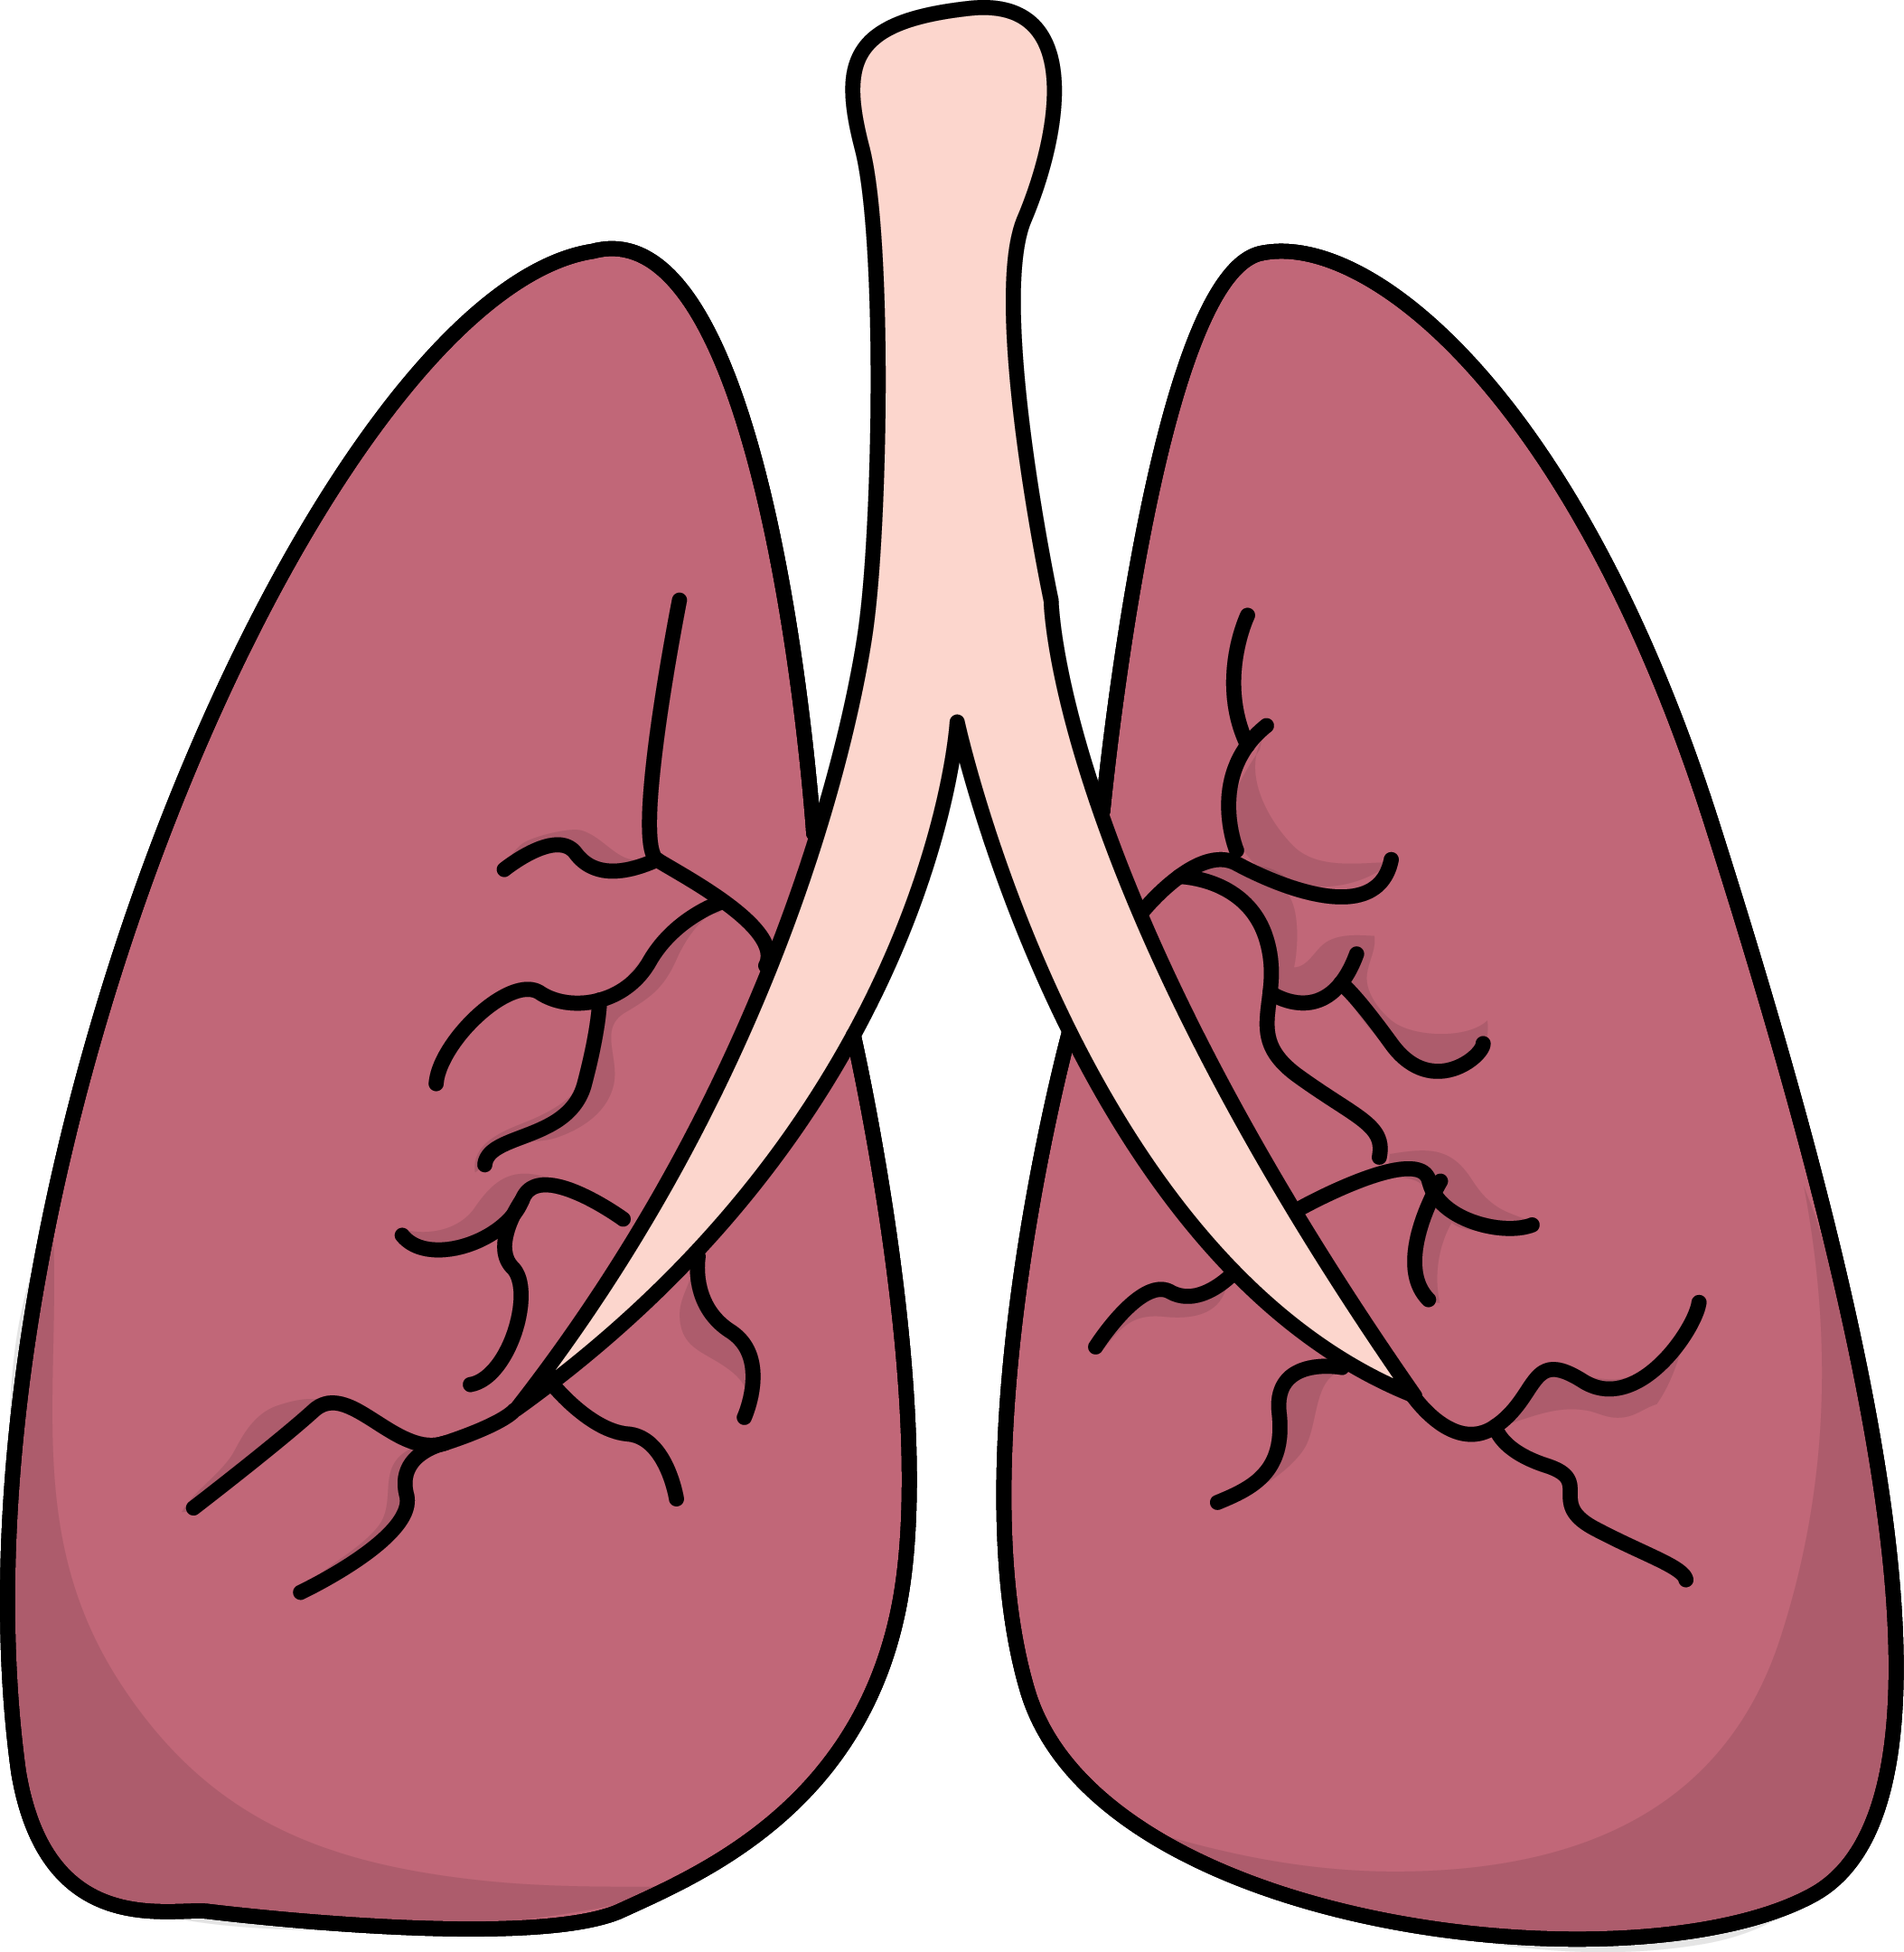 Lungs clipart frog. Image for free health